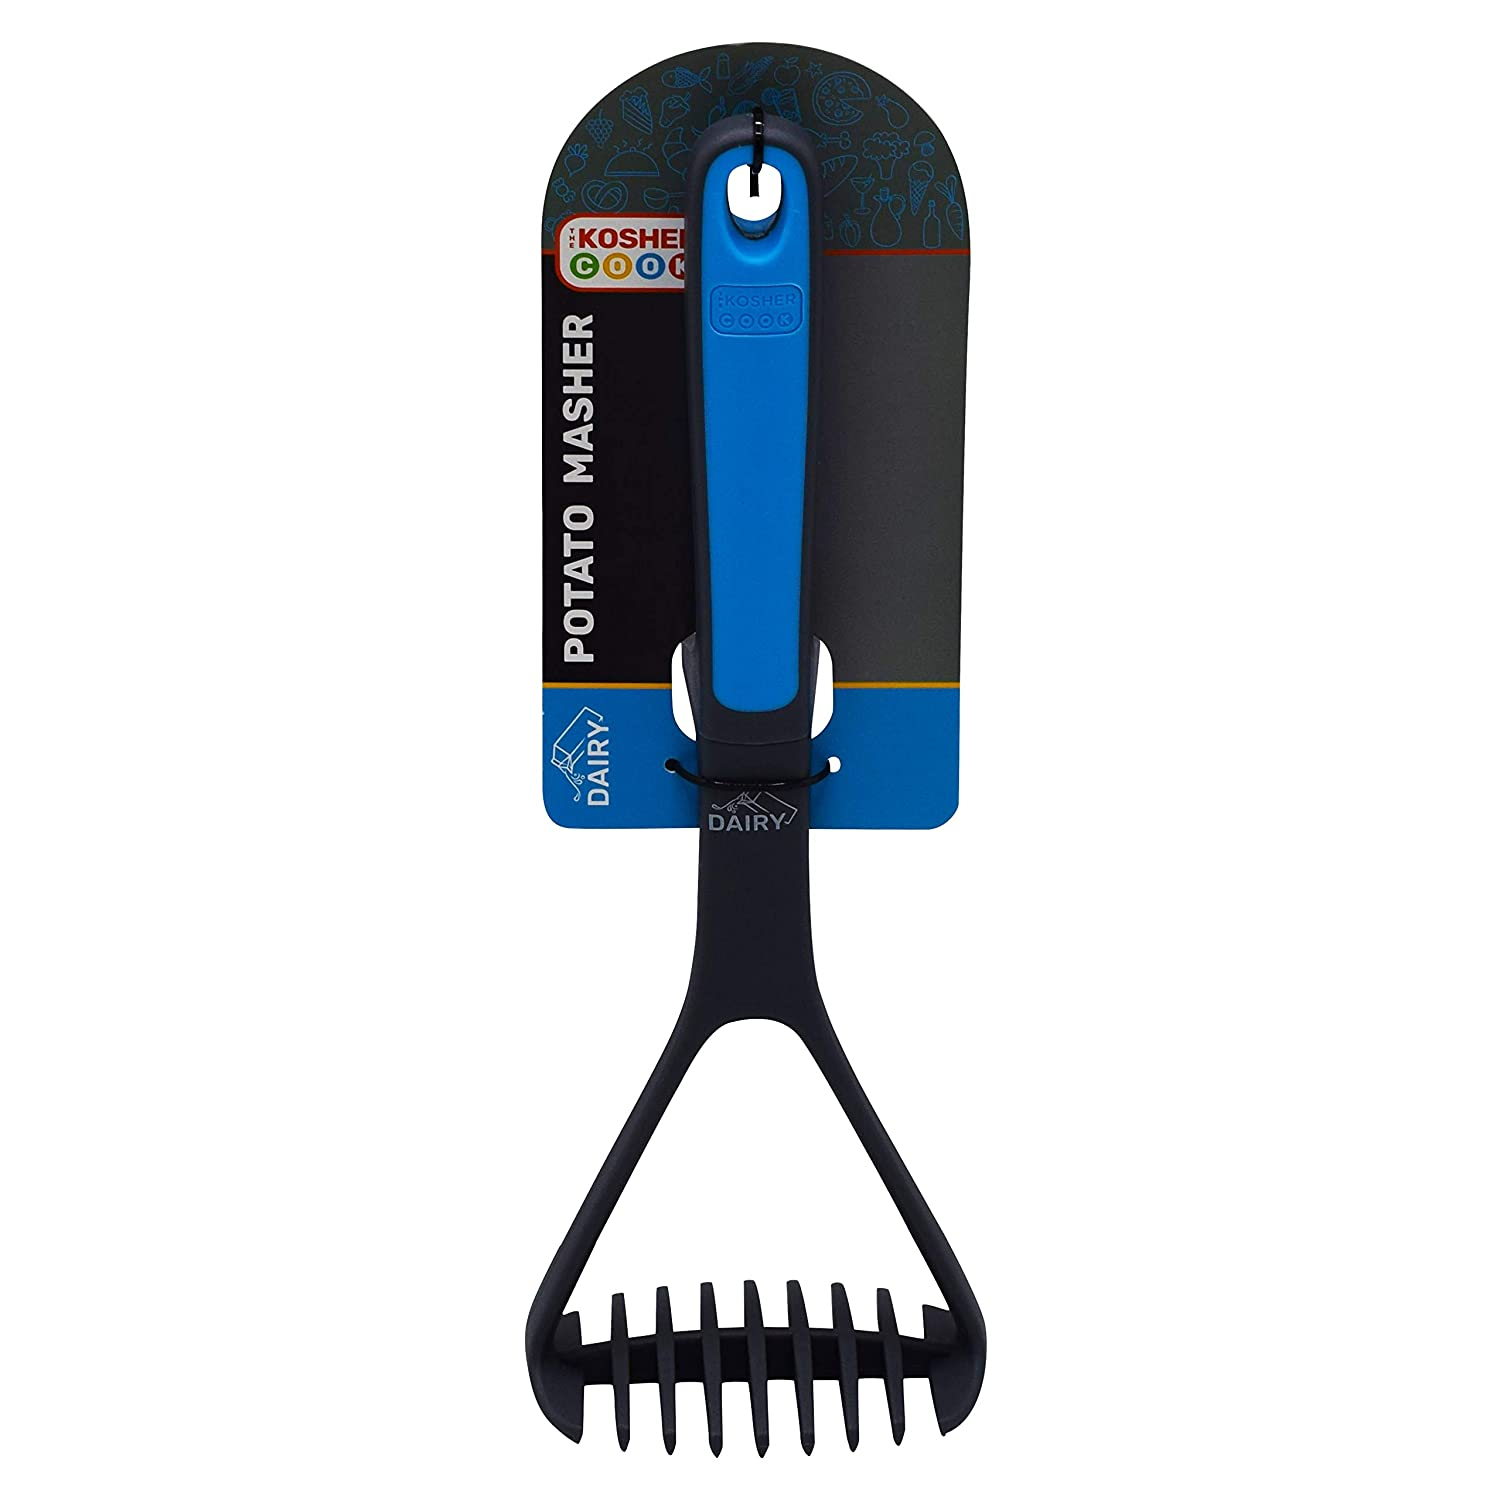 Color Coded Home and Kitchen Accessories by The Kosher Cook Comfortable Grip Soften and Crush Hot and Cold Cooked Foods Easily Mash Non Stick Silicone Dairy Blue Potato Masher Long